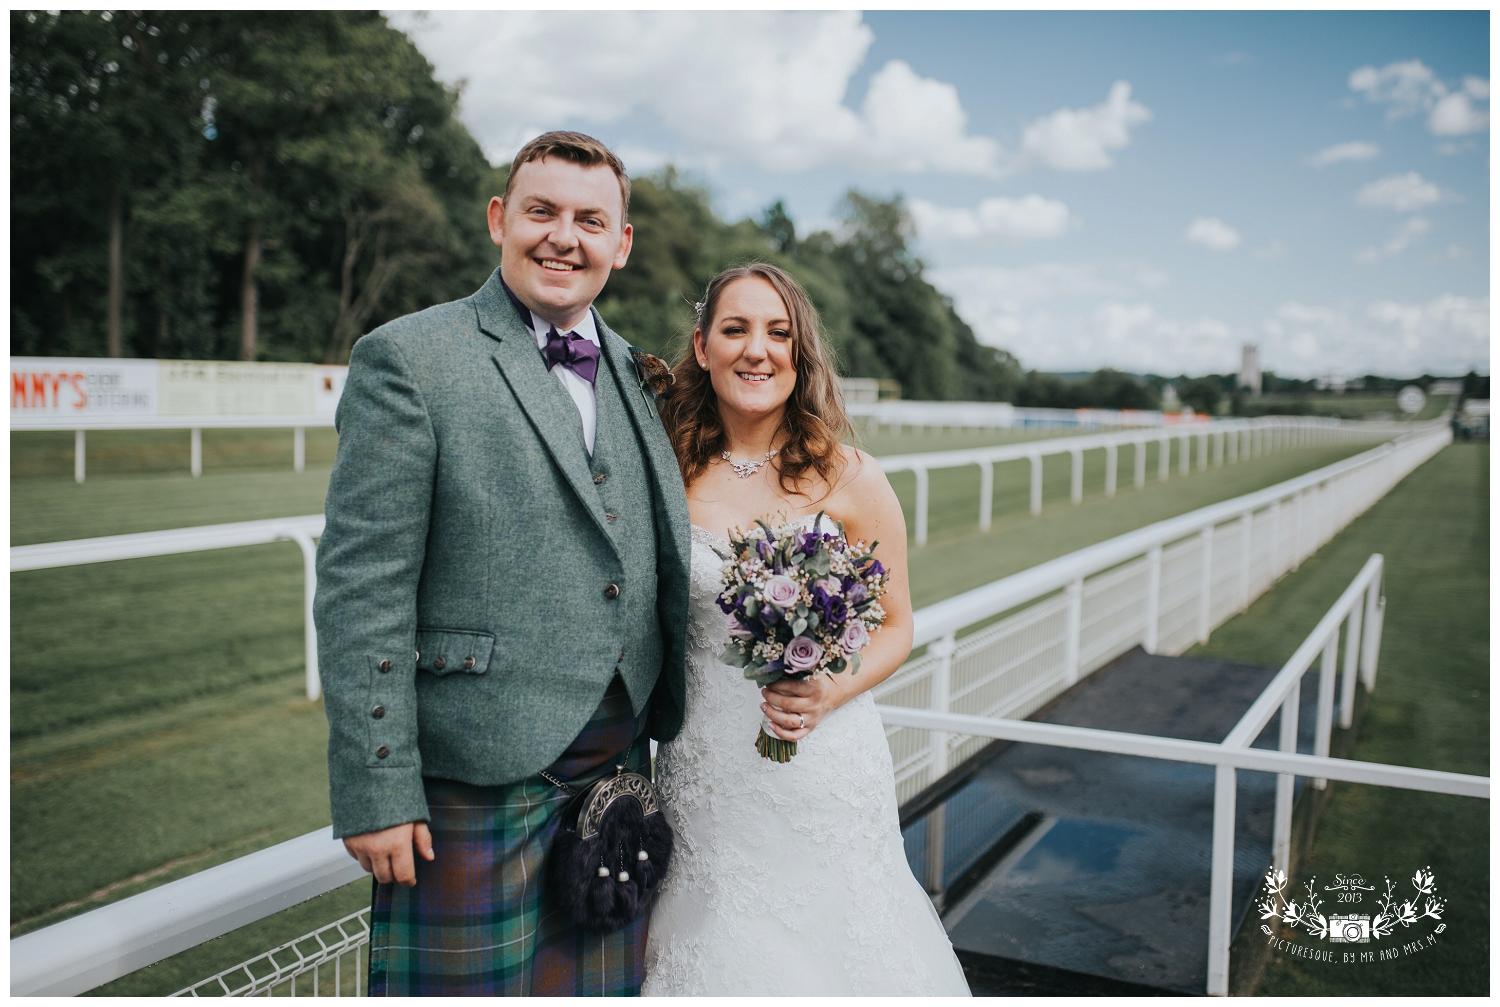 Hamilton Park Racecourse  wedding photography, Picturesque by Mr and Mrs M_0068.jpg